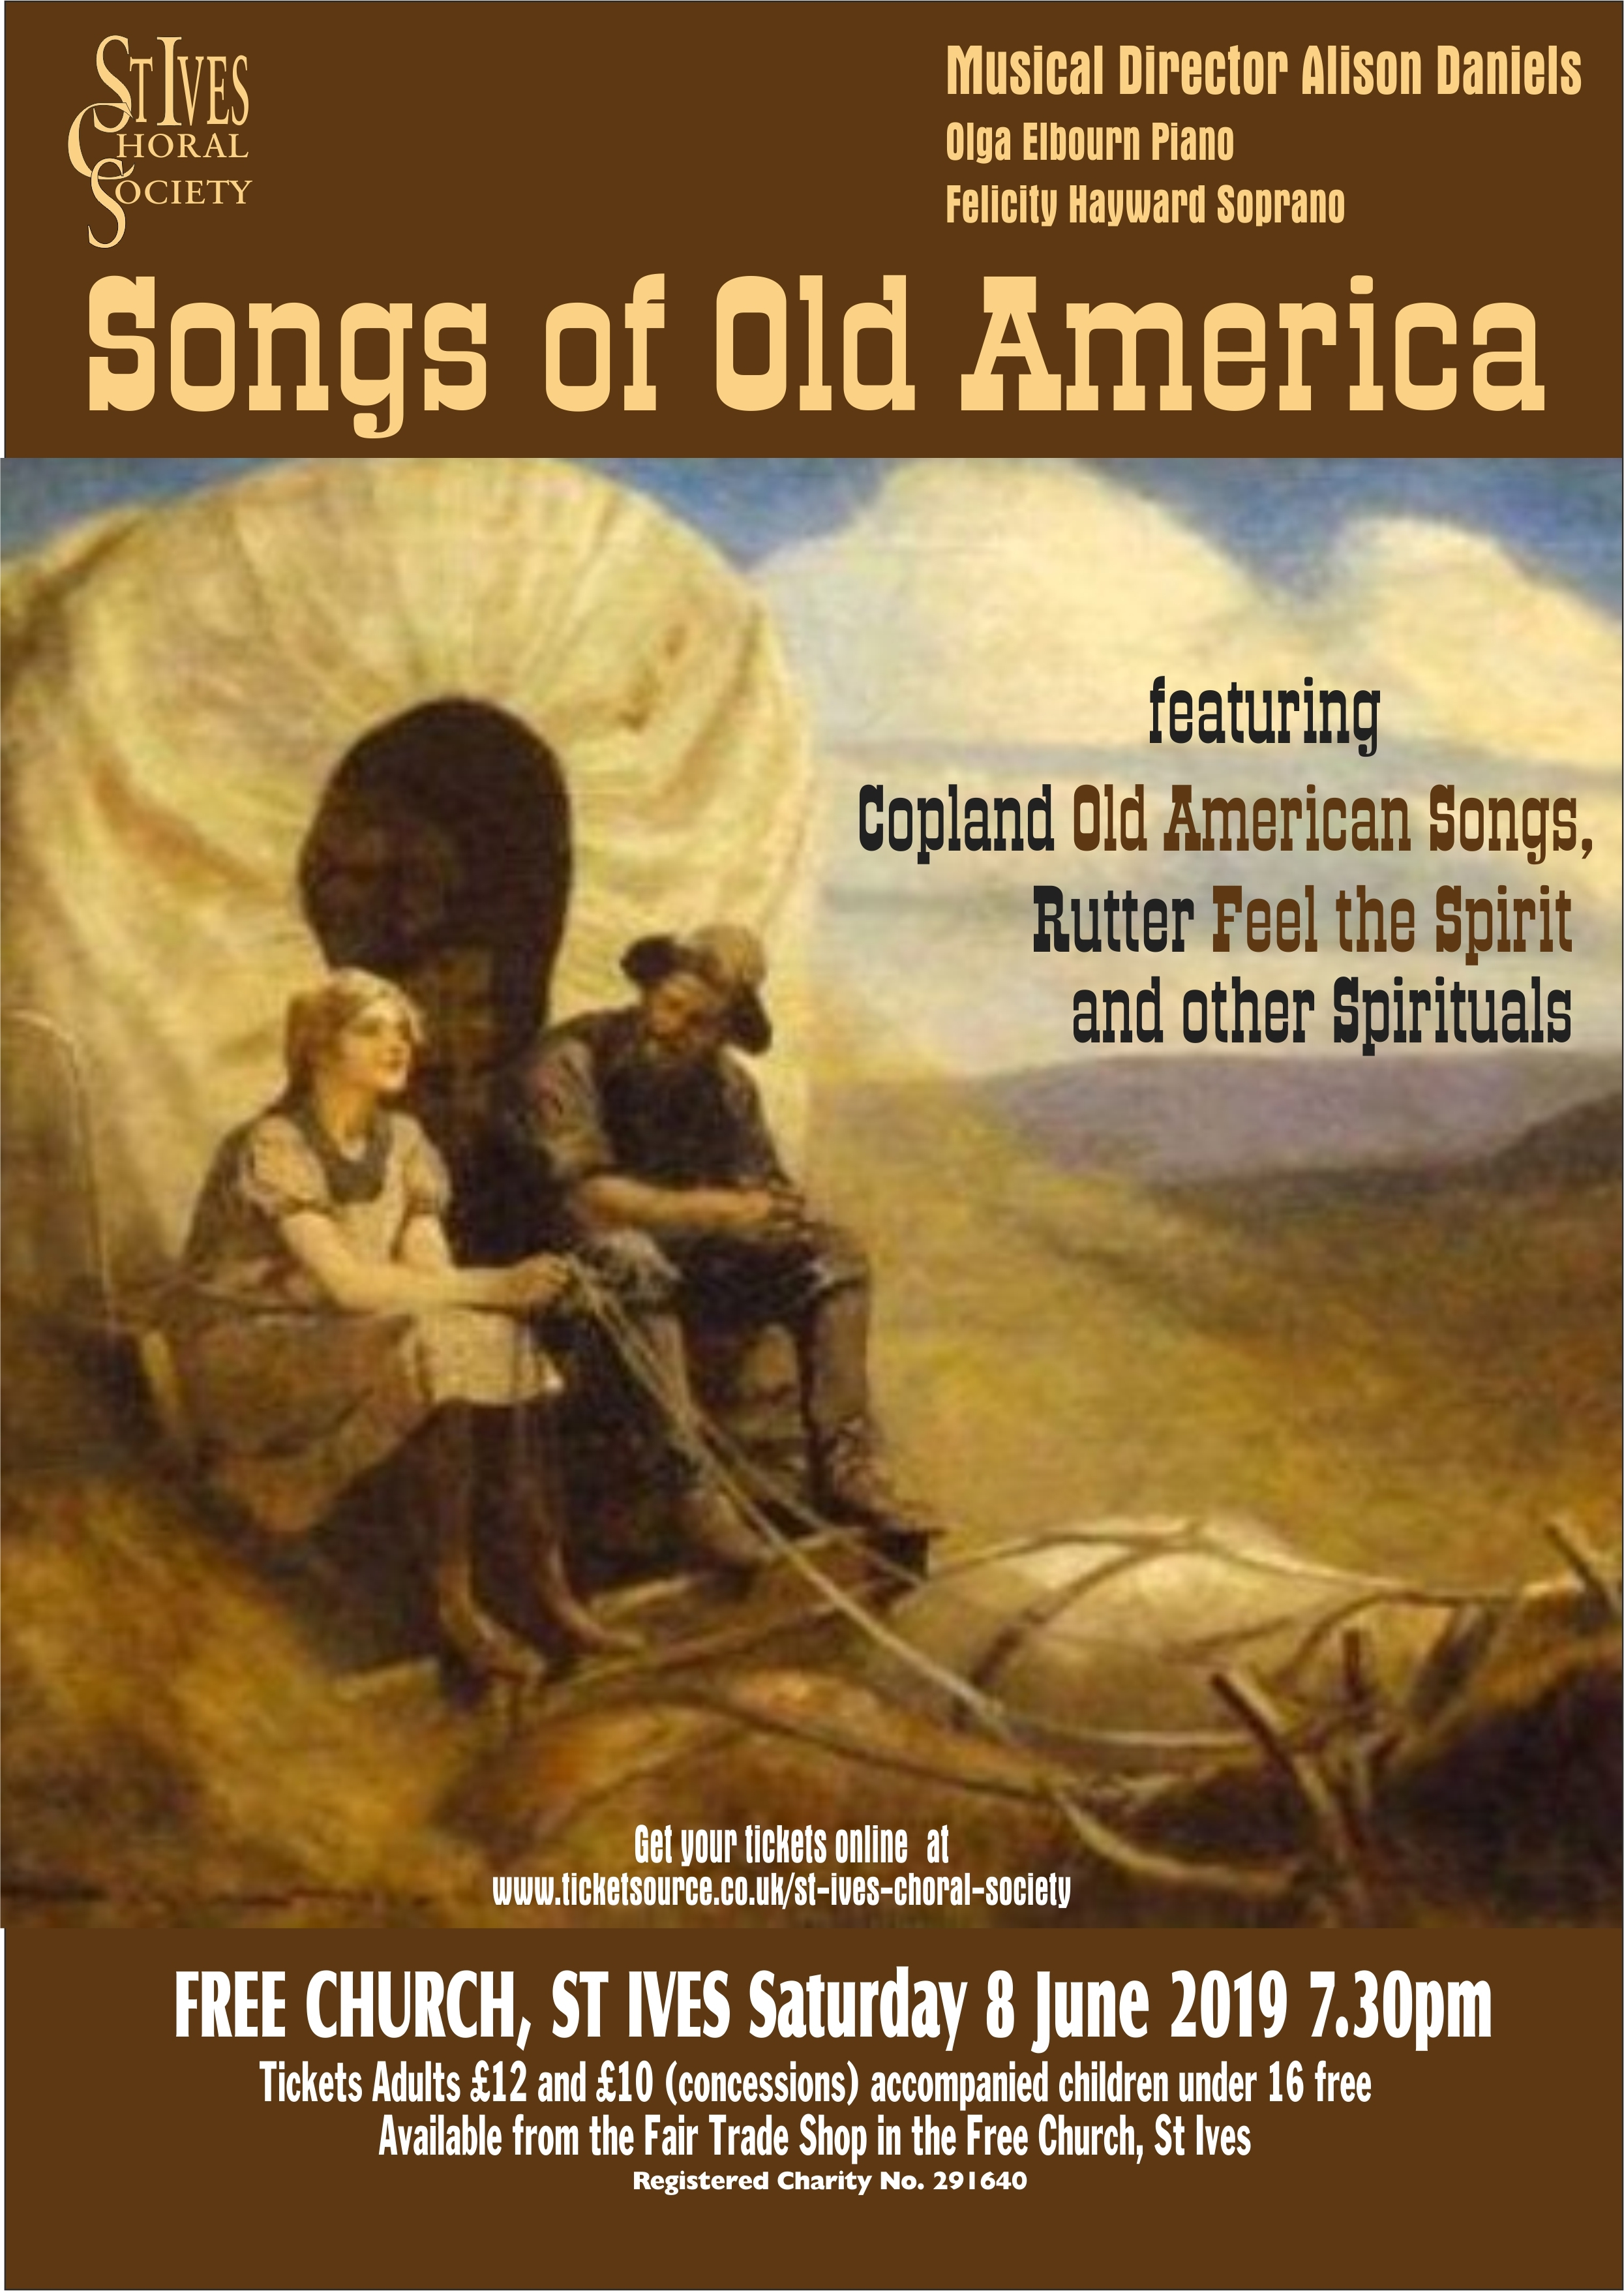 St Ives Choral Society: Songs of Old America at Free Church